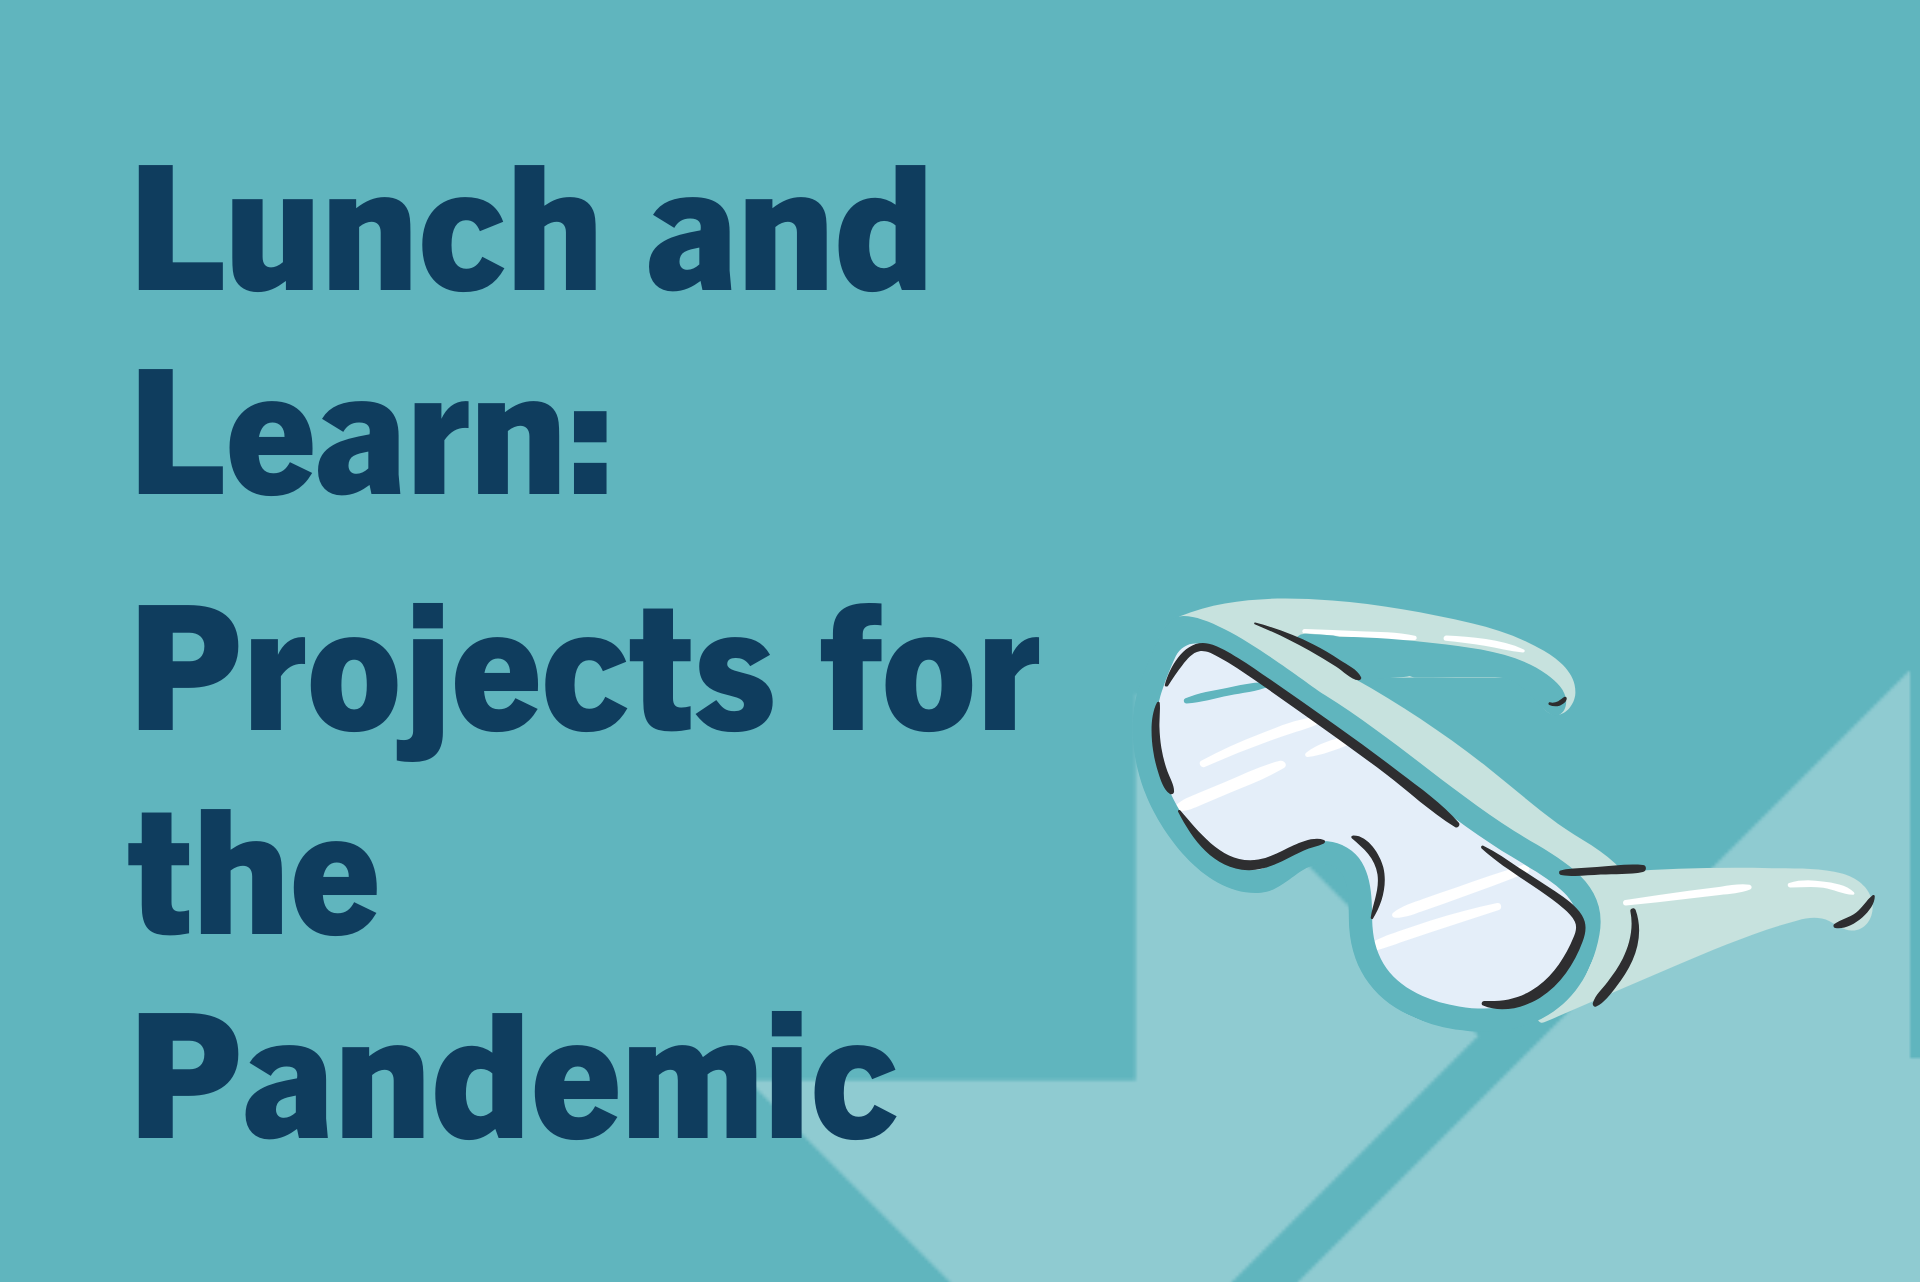 Lunch and Learn: Projects for the Pandemic